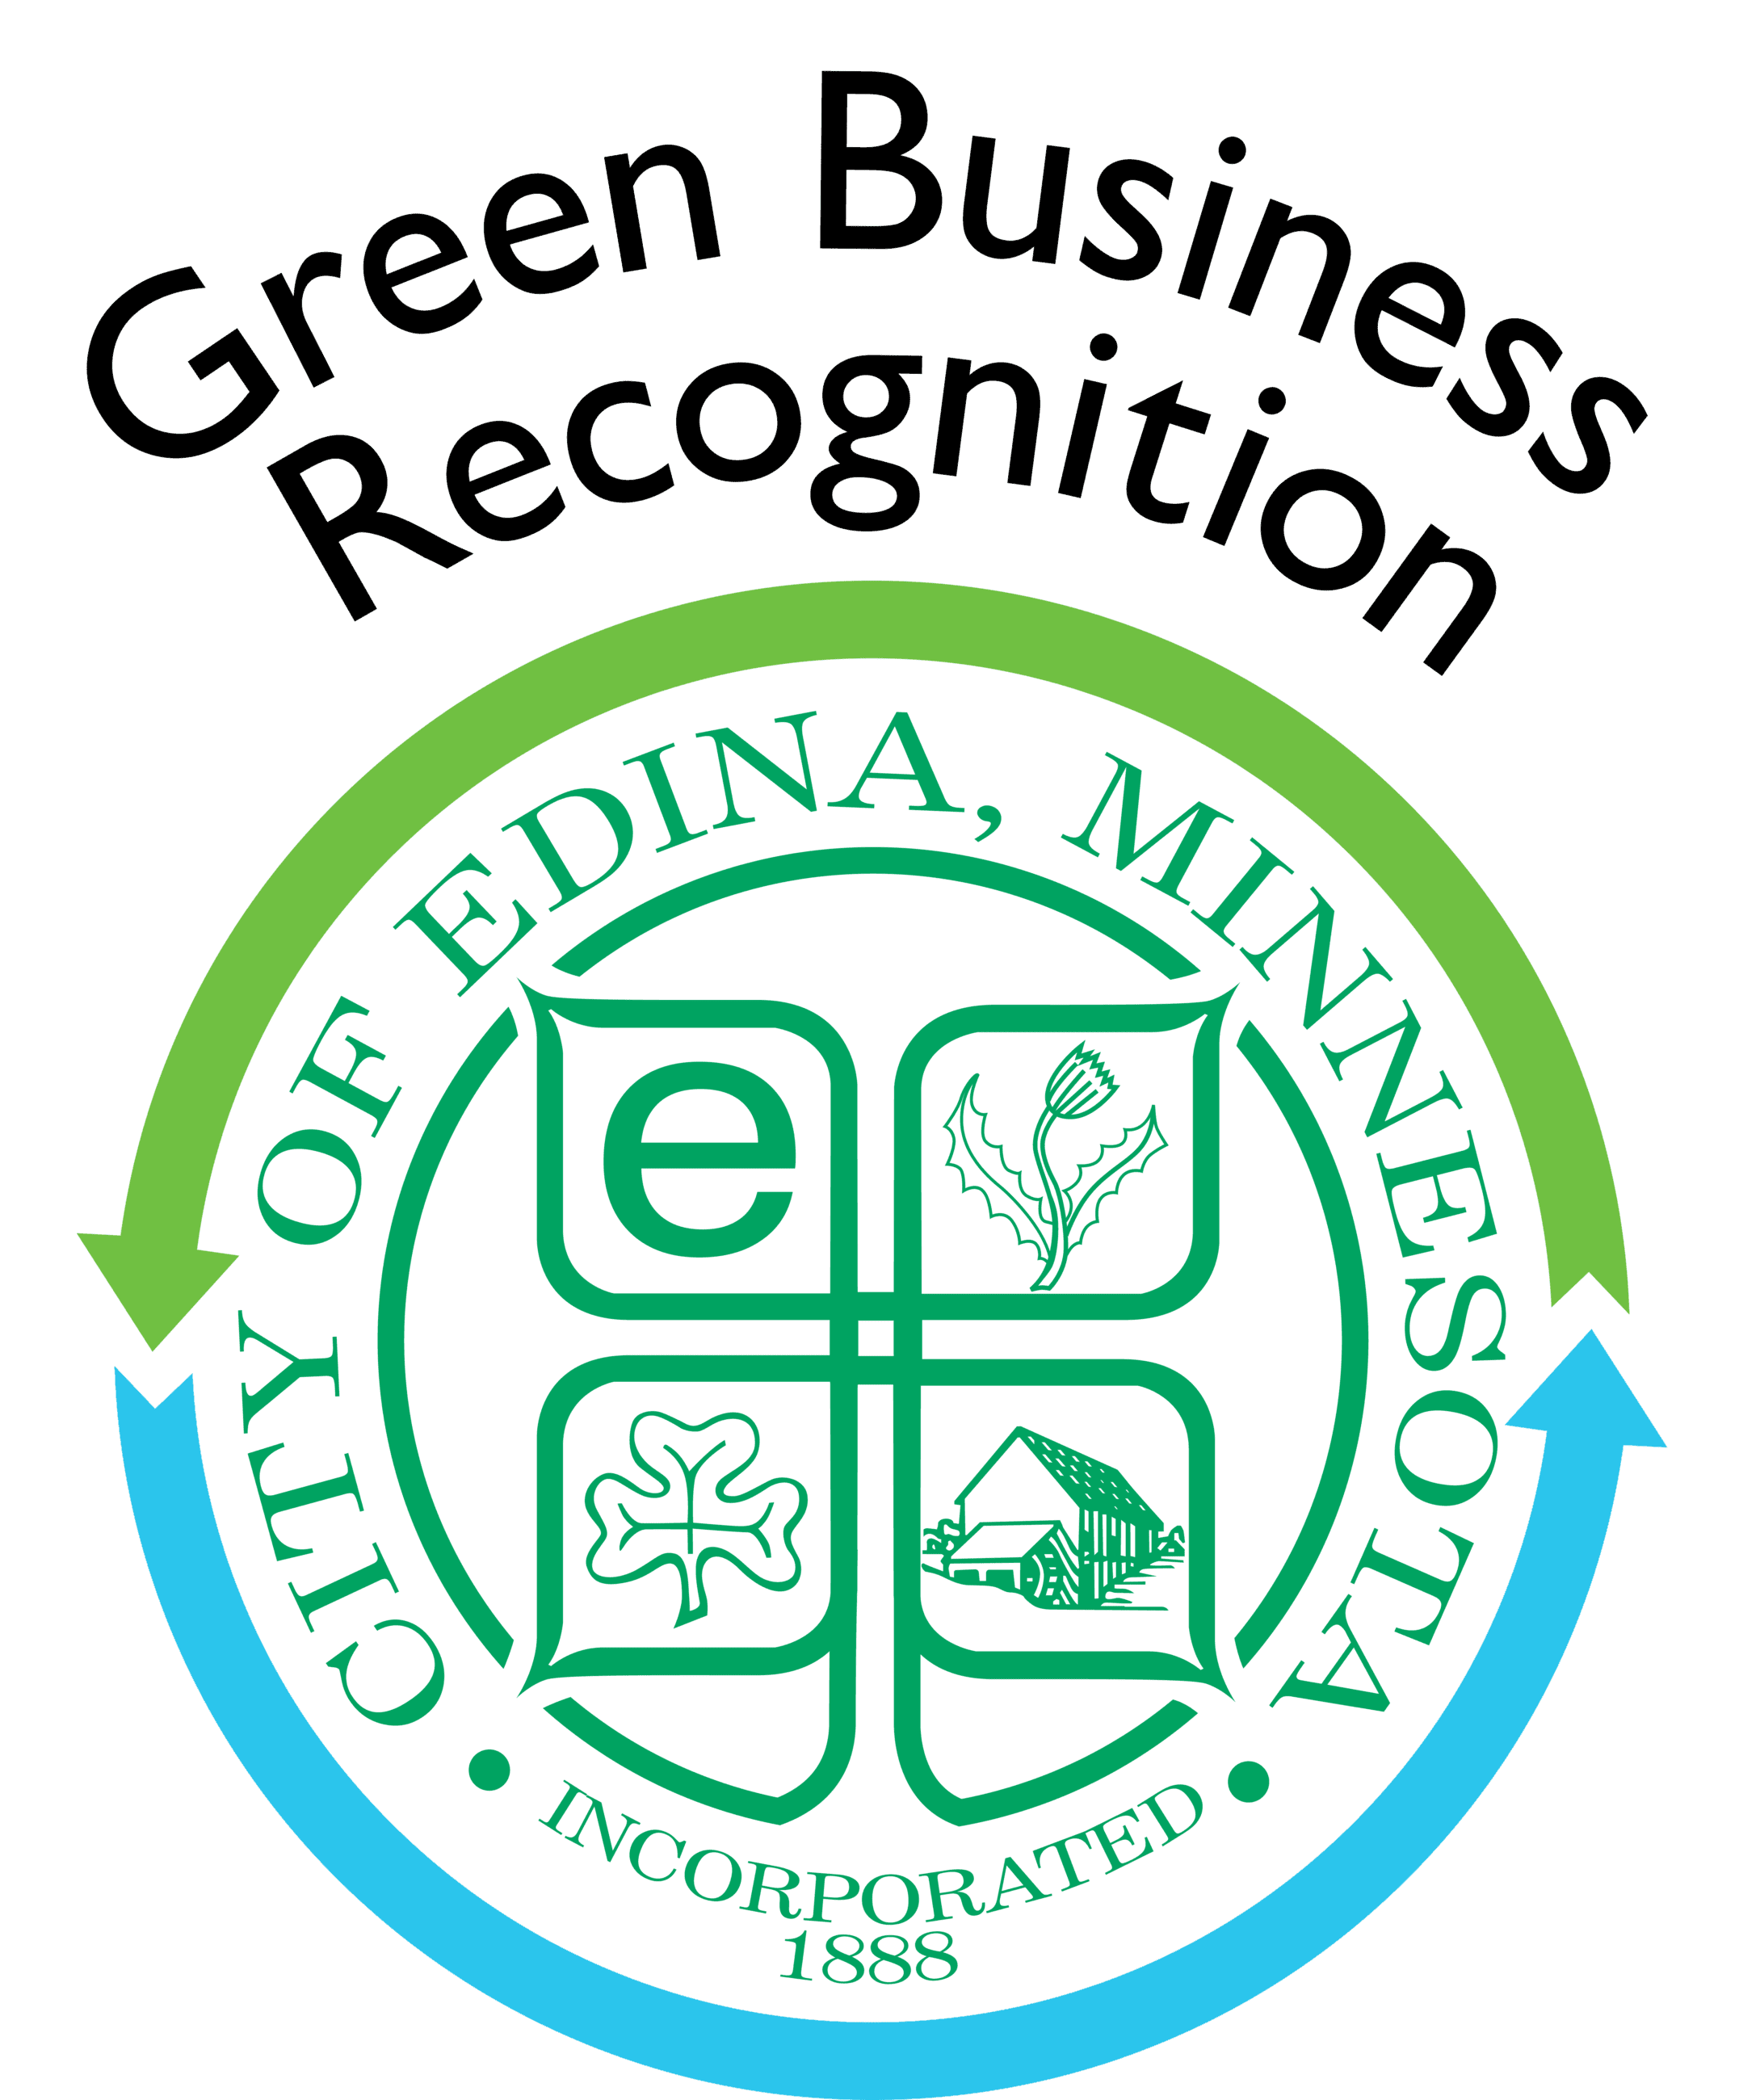 Green Business Recognition City of Edina, Minnesota